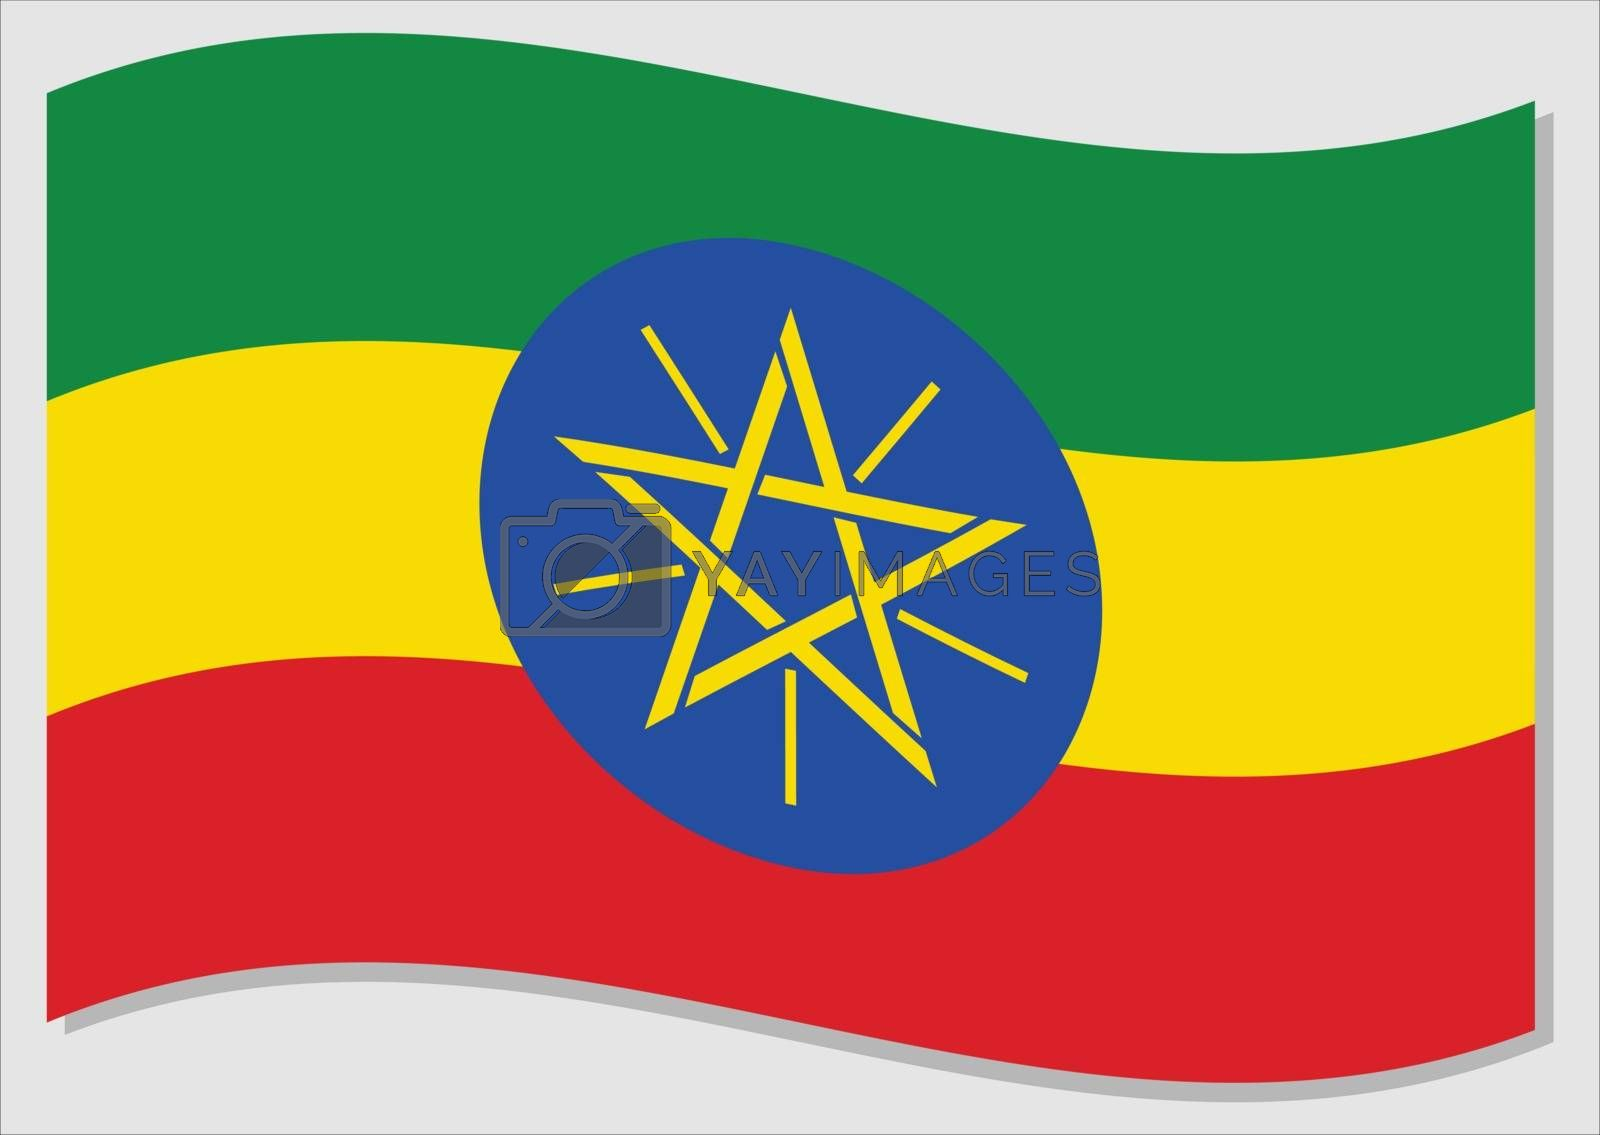 Waving flag of Ethiopia vector graphic. Waving Ethiopian flag illustration. Ethiopia country flag wavin in the wind is a symbol of freedom and independence.